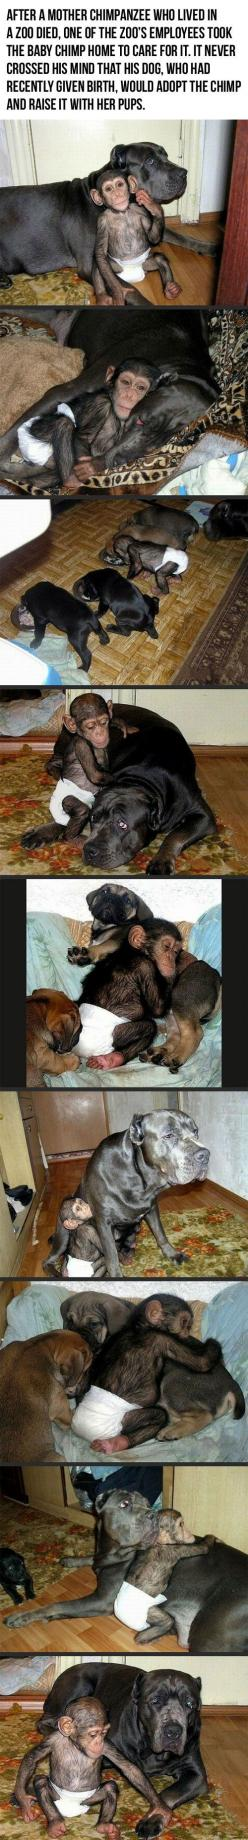 Ohhhhhhhhhhhhhhhhhhhhhhhhhhhhhhhhhhhhhhhh my god this is the cutest thing EVER.: Animal Friendship, Animals, Pet, Baby Chimpanzee, My Heart, Baby Monkeys